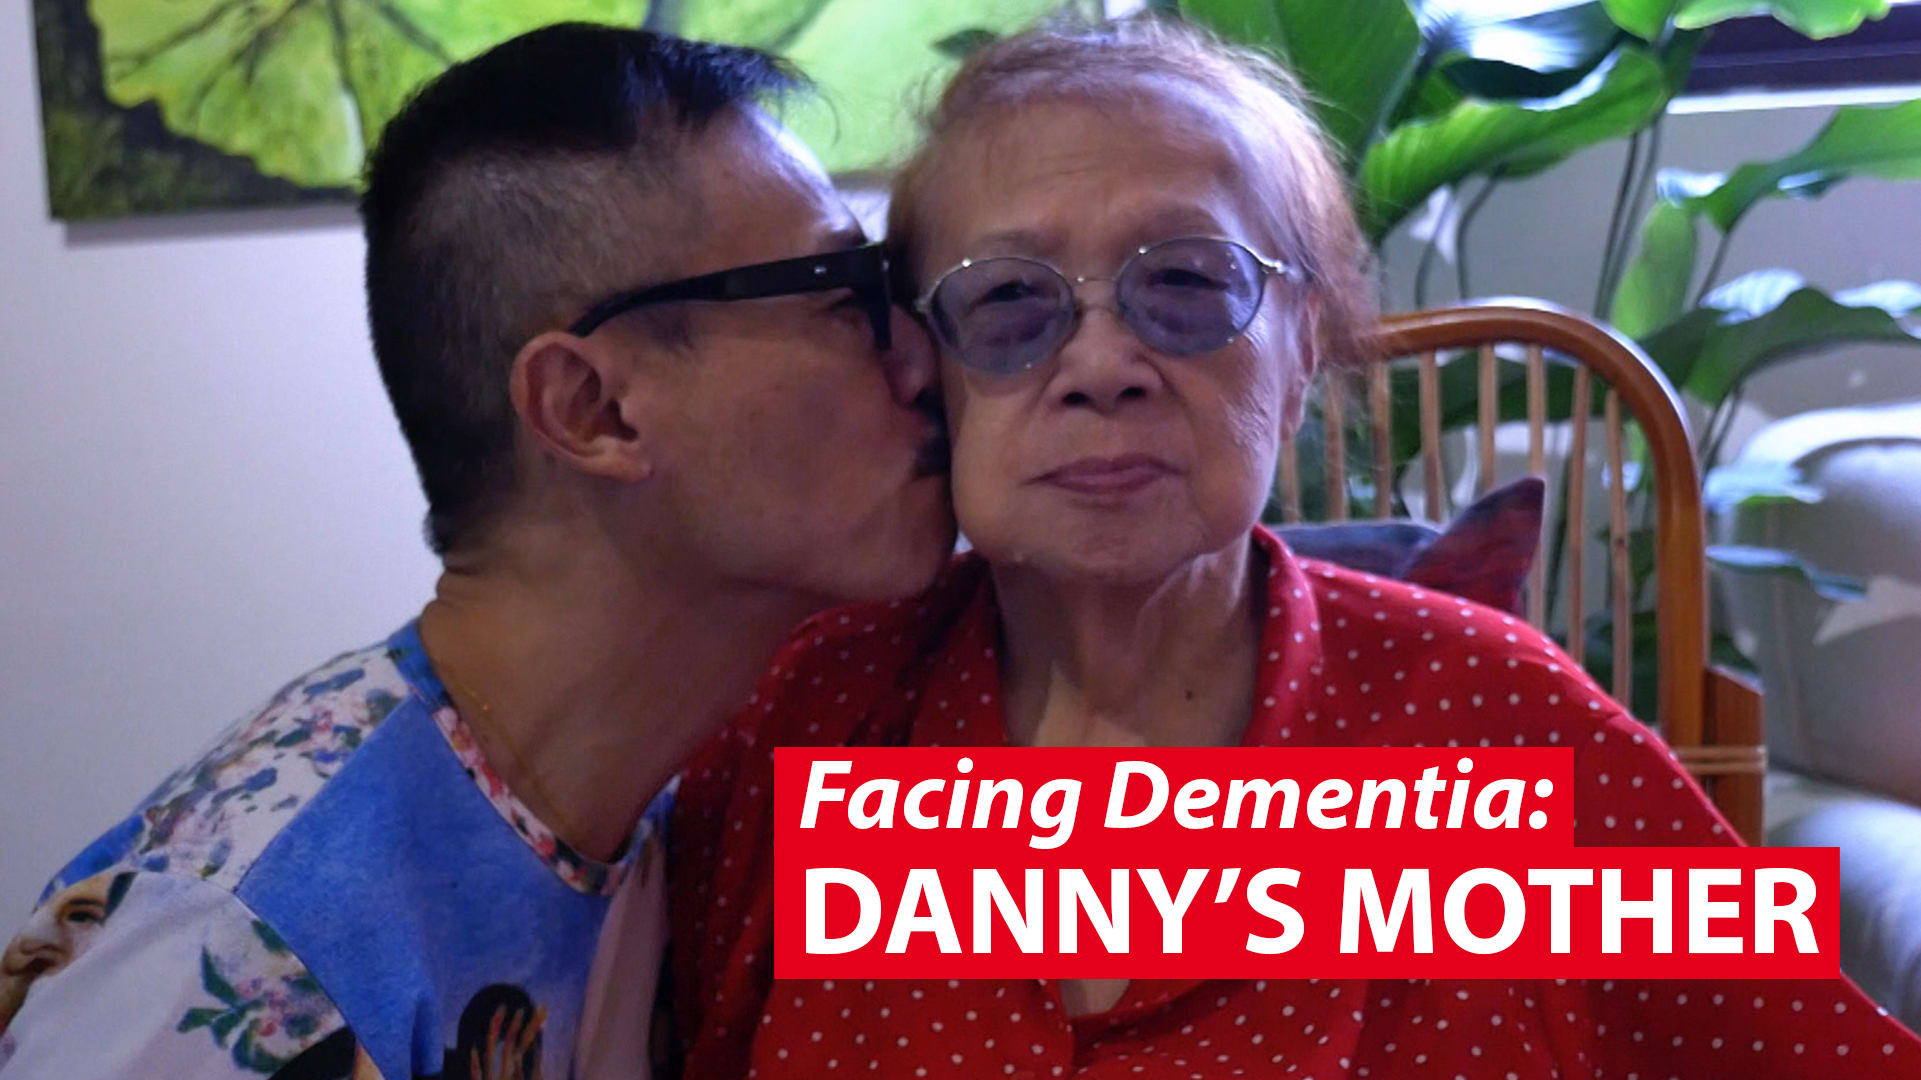 Danny's Mother: A love-hate-love story of facing dementia